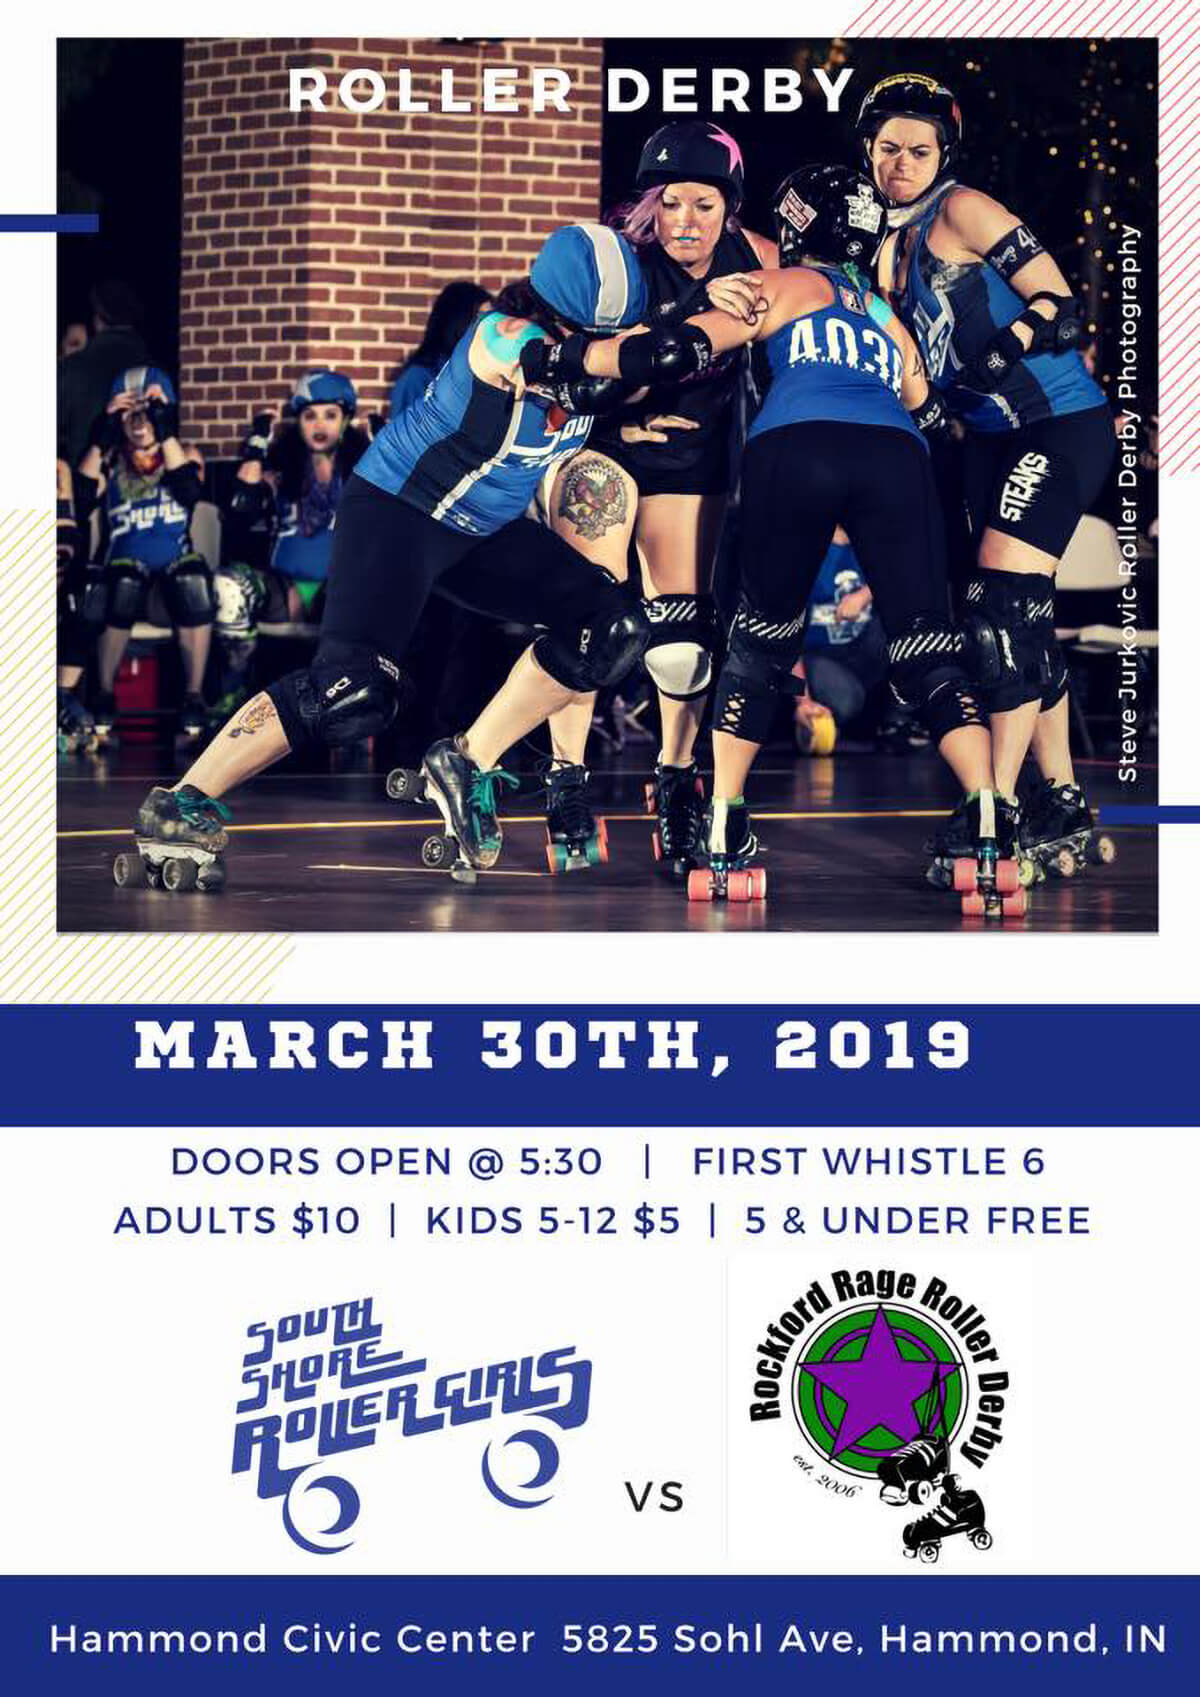 the South Shore Roller Girls back to Hammond as they open their season at the Hammond Civic Center on Saturday, March 30.